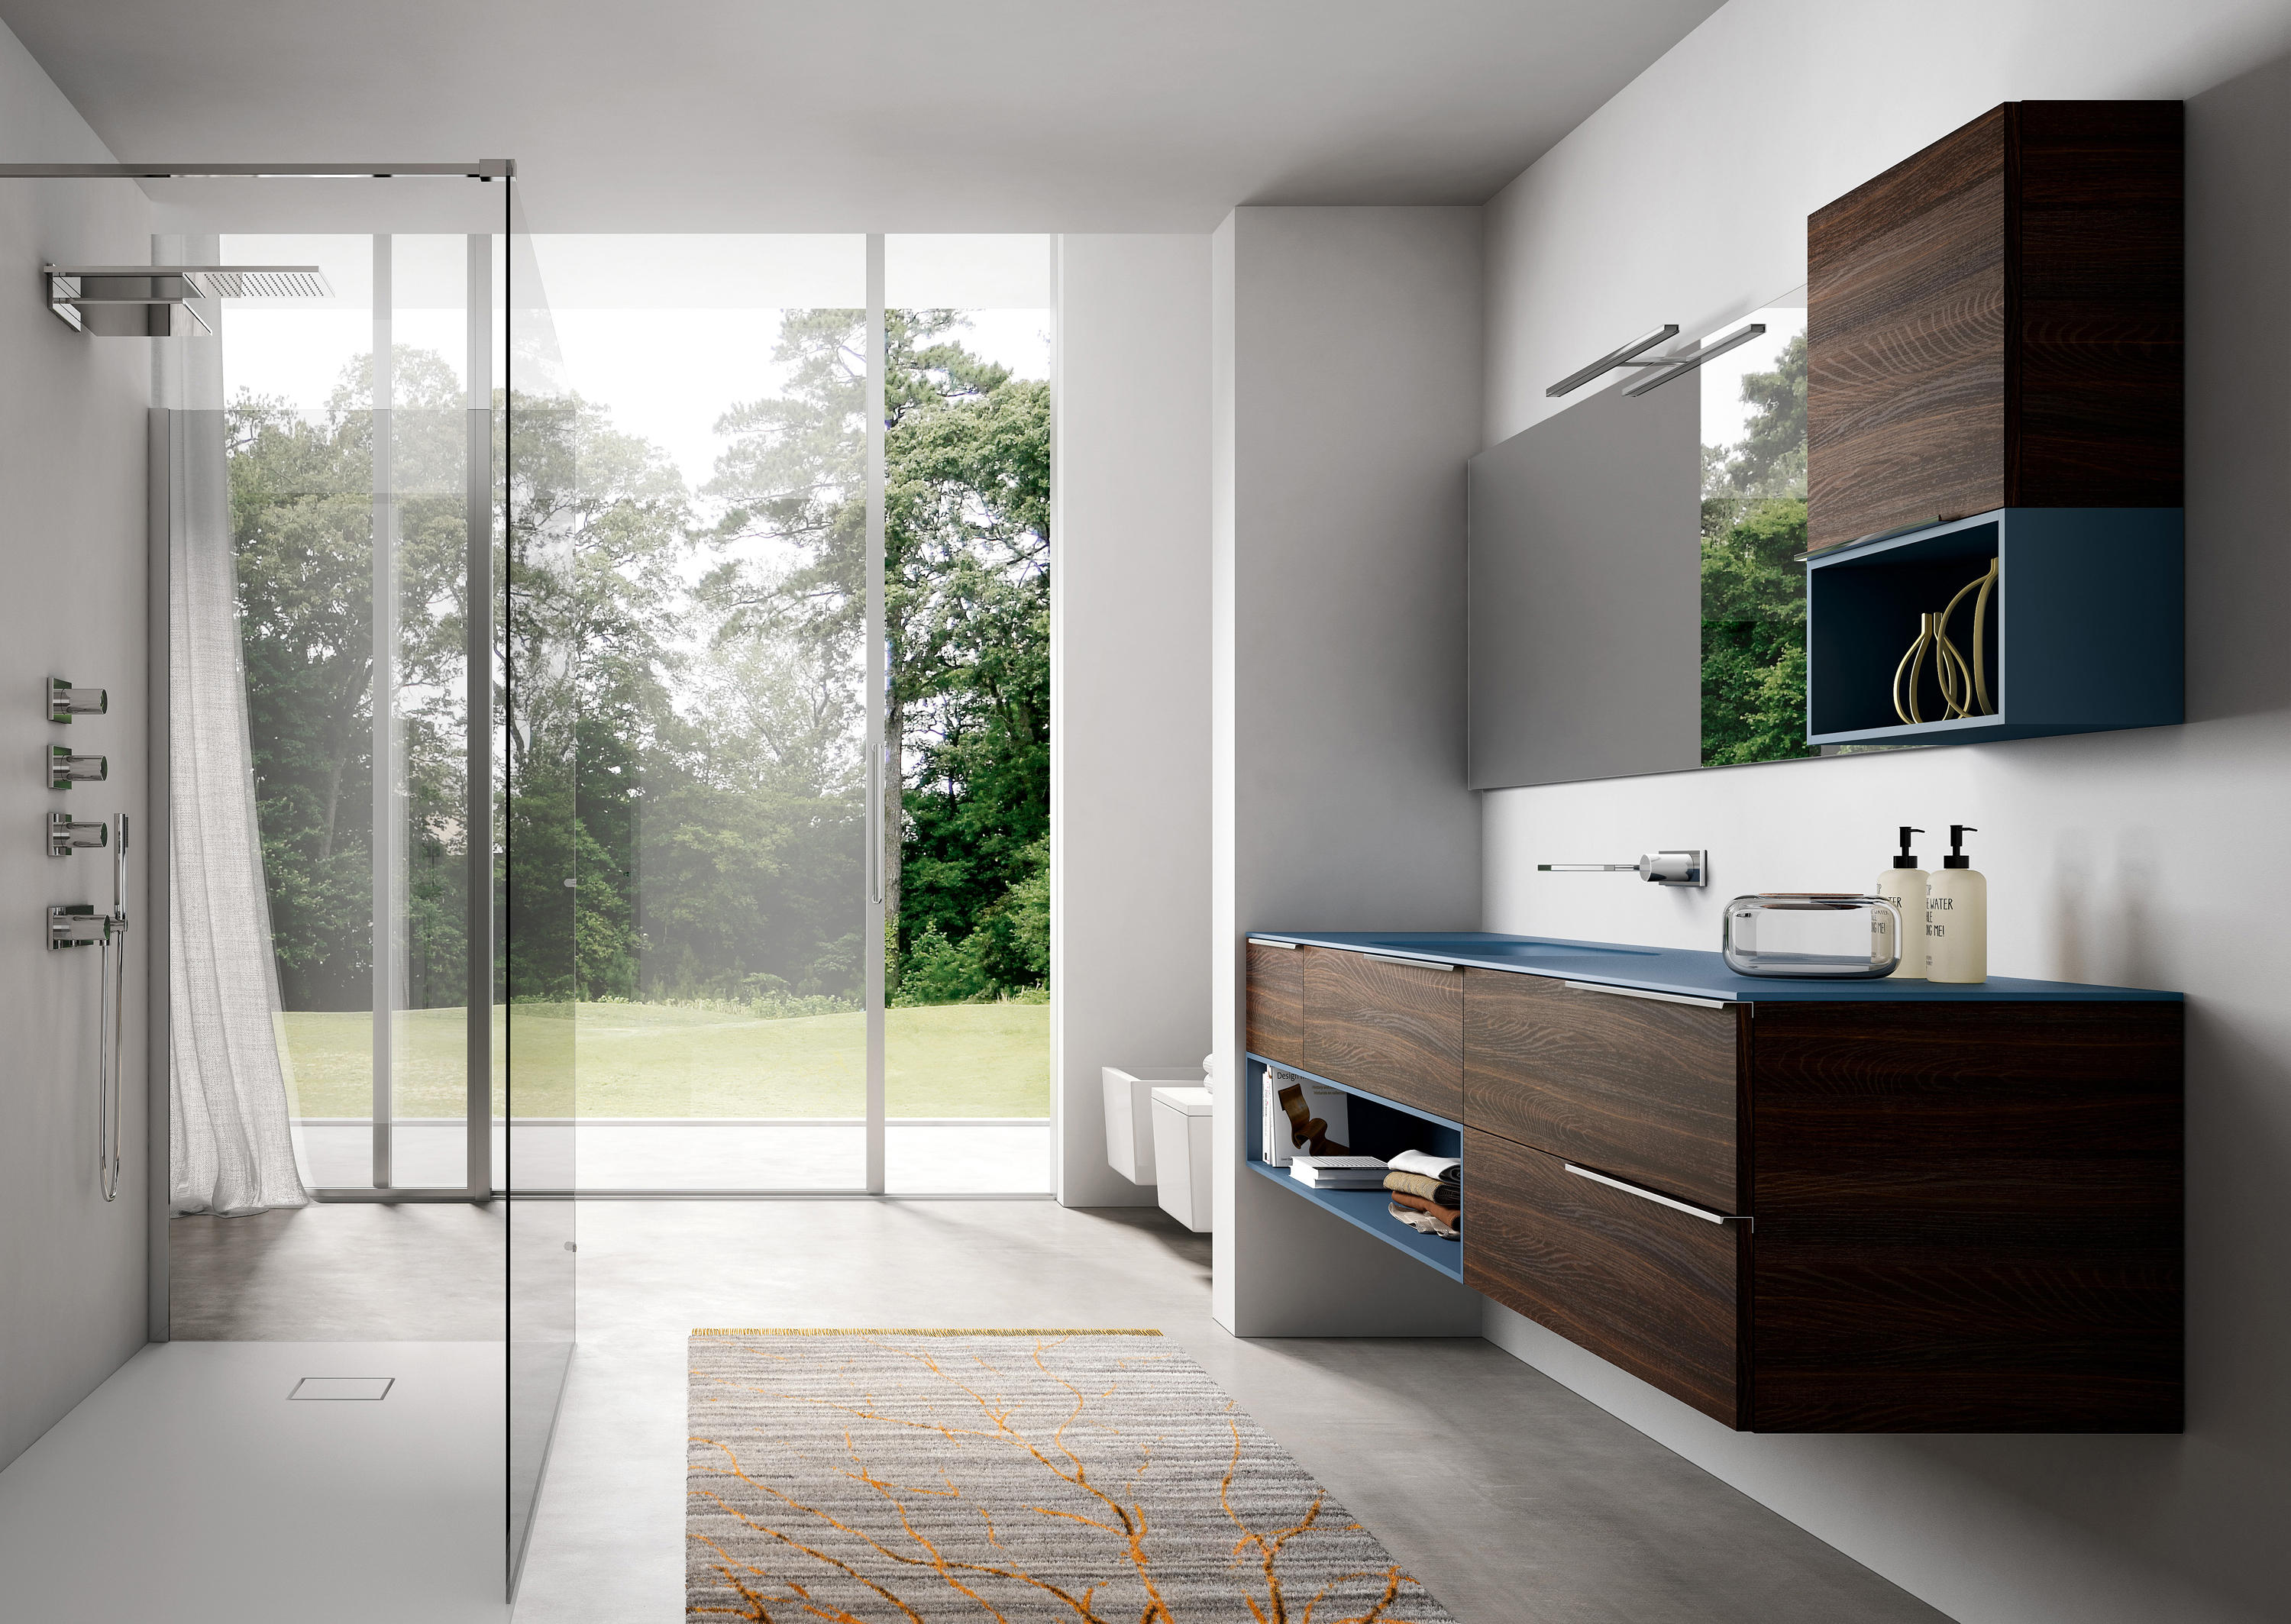 Idea Mobili Da Bagno.My Time 01 Wall Cabinets From Idea Group Architonic